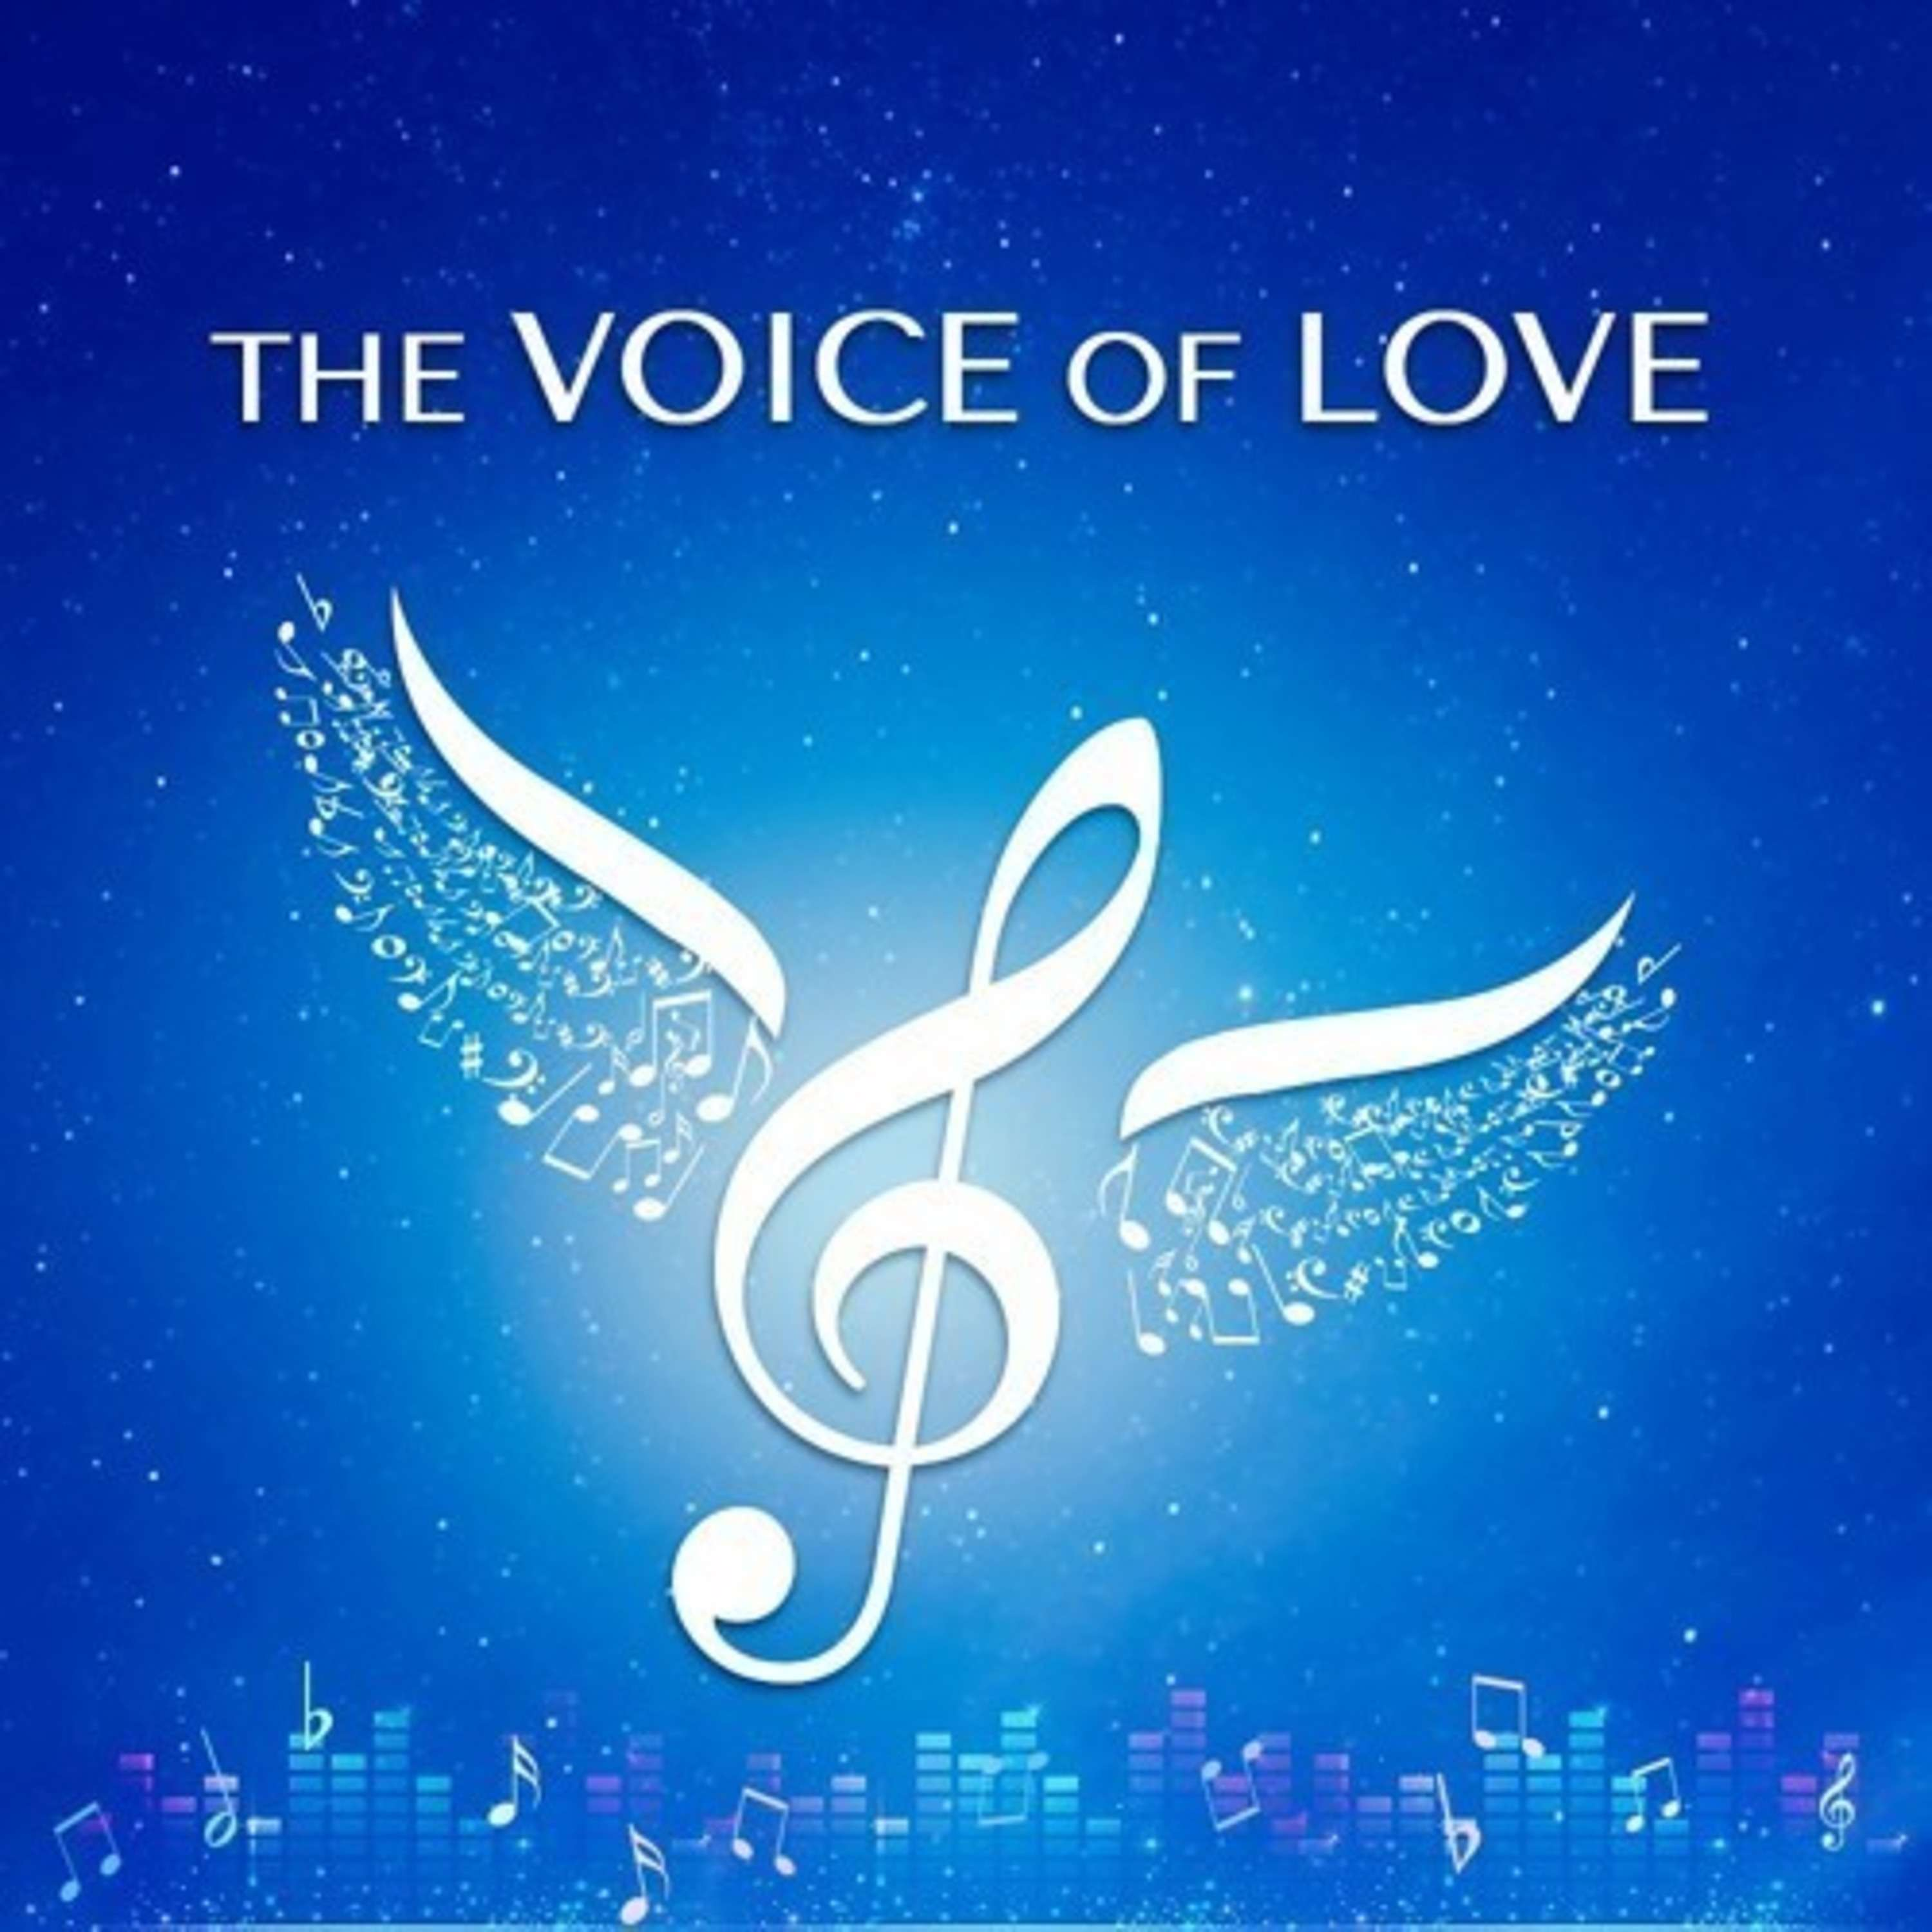 The Voice of Truth: The Voice of Love 92